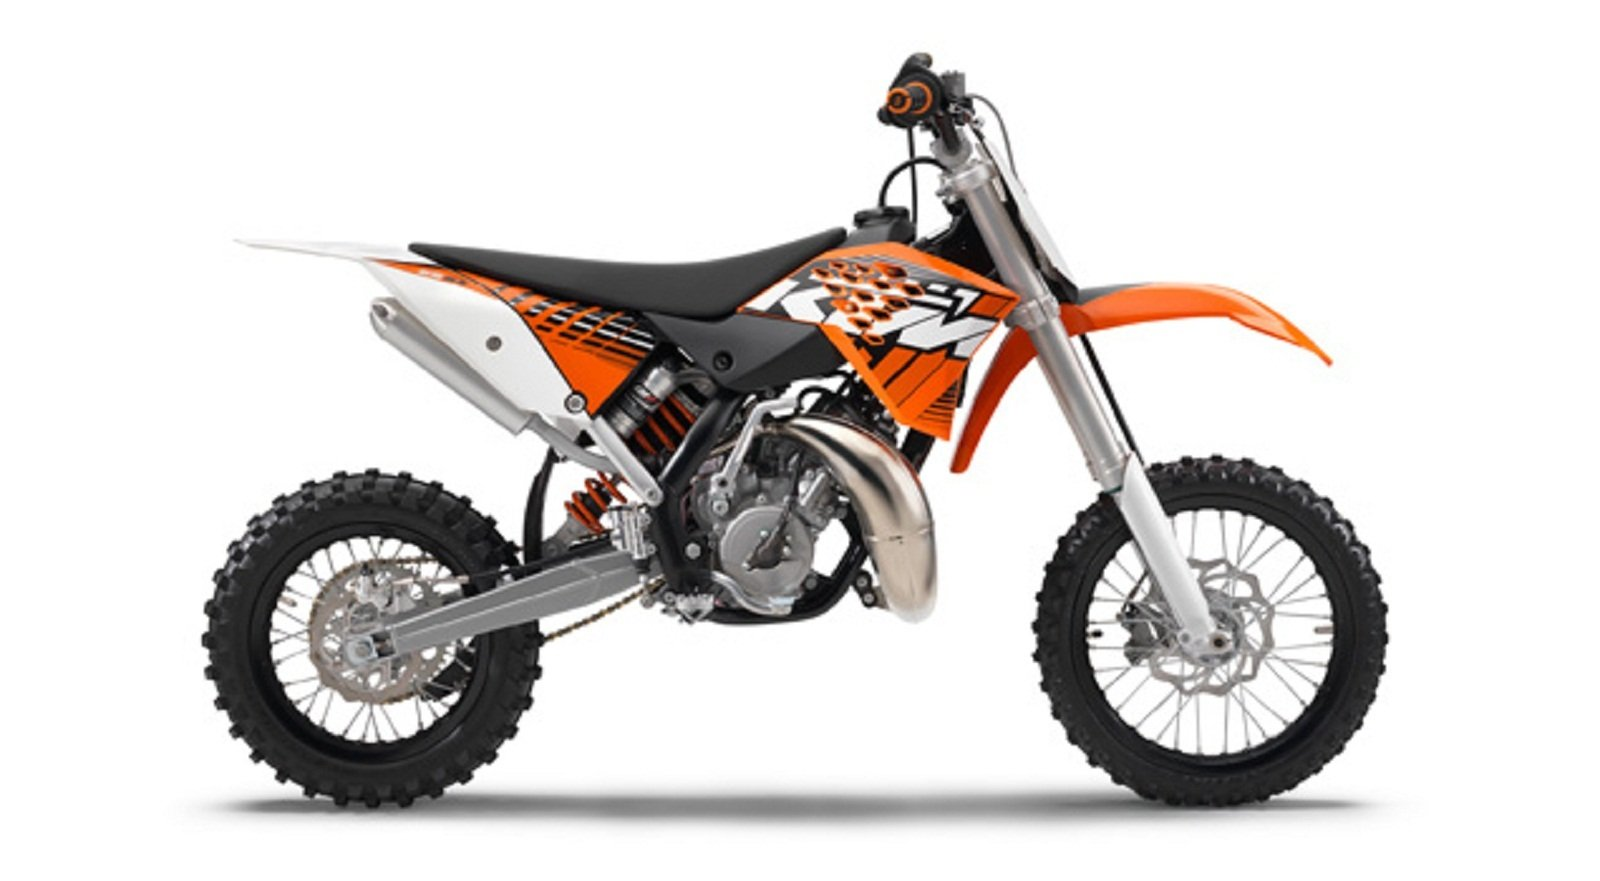 2012 Ktm 65 Sx Picture 434959 Motorcycle Review Top